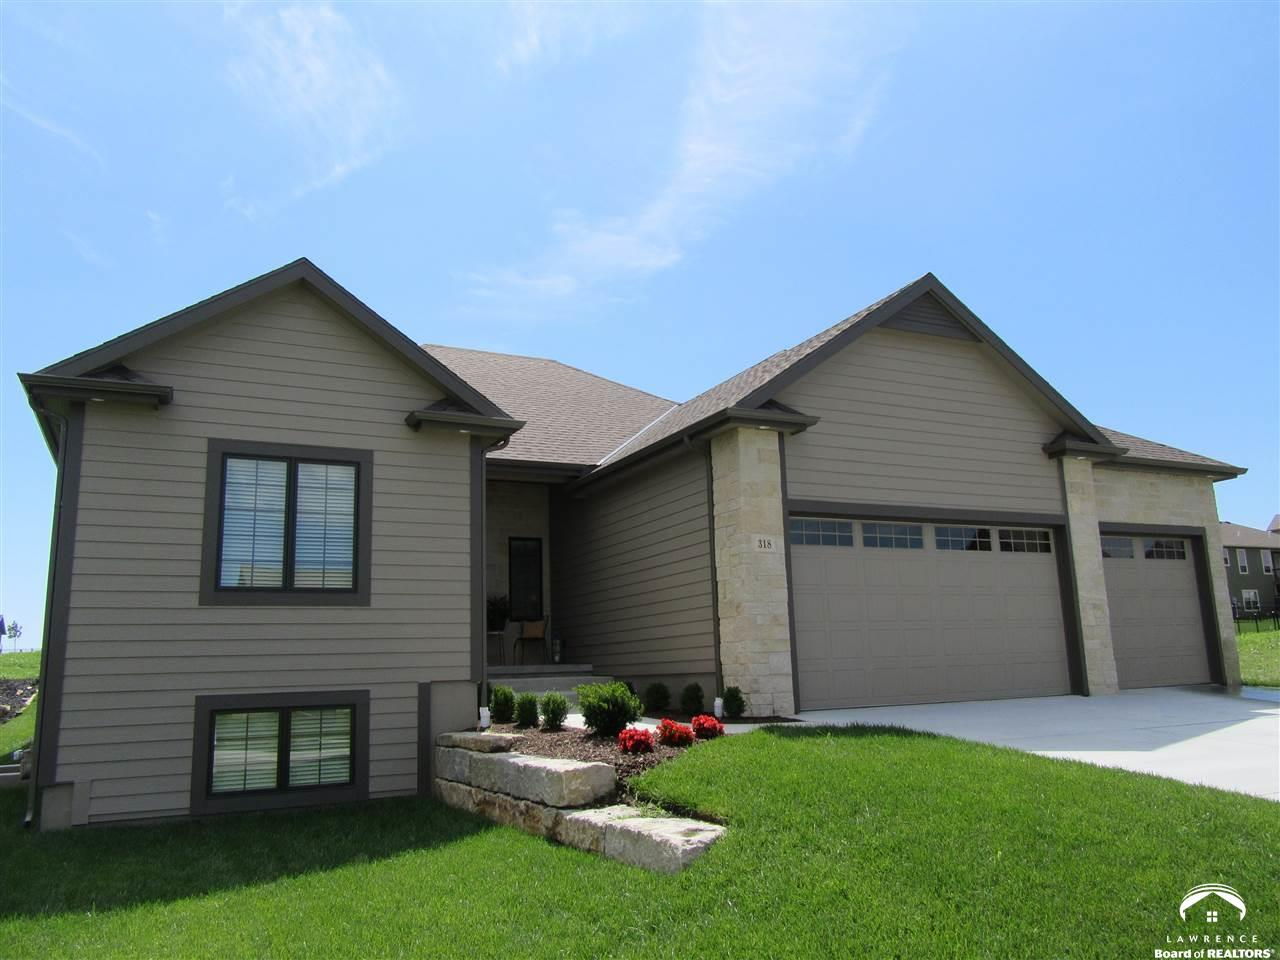 318 Headwaters Dr, Lawrence, KS 66049